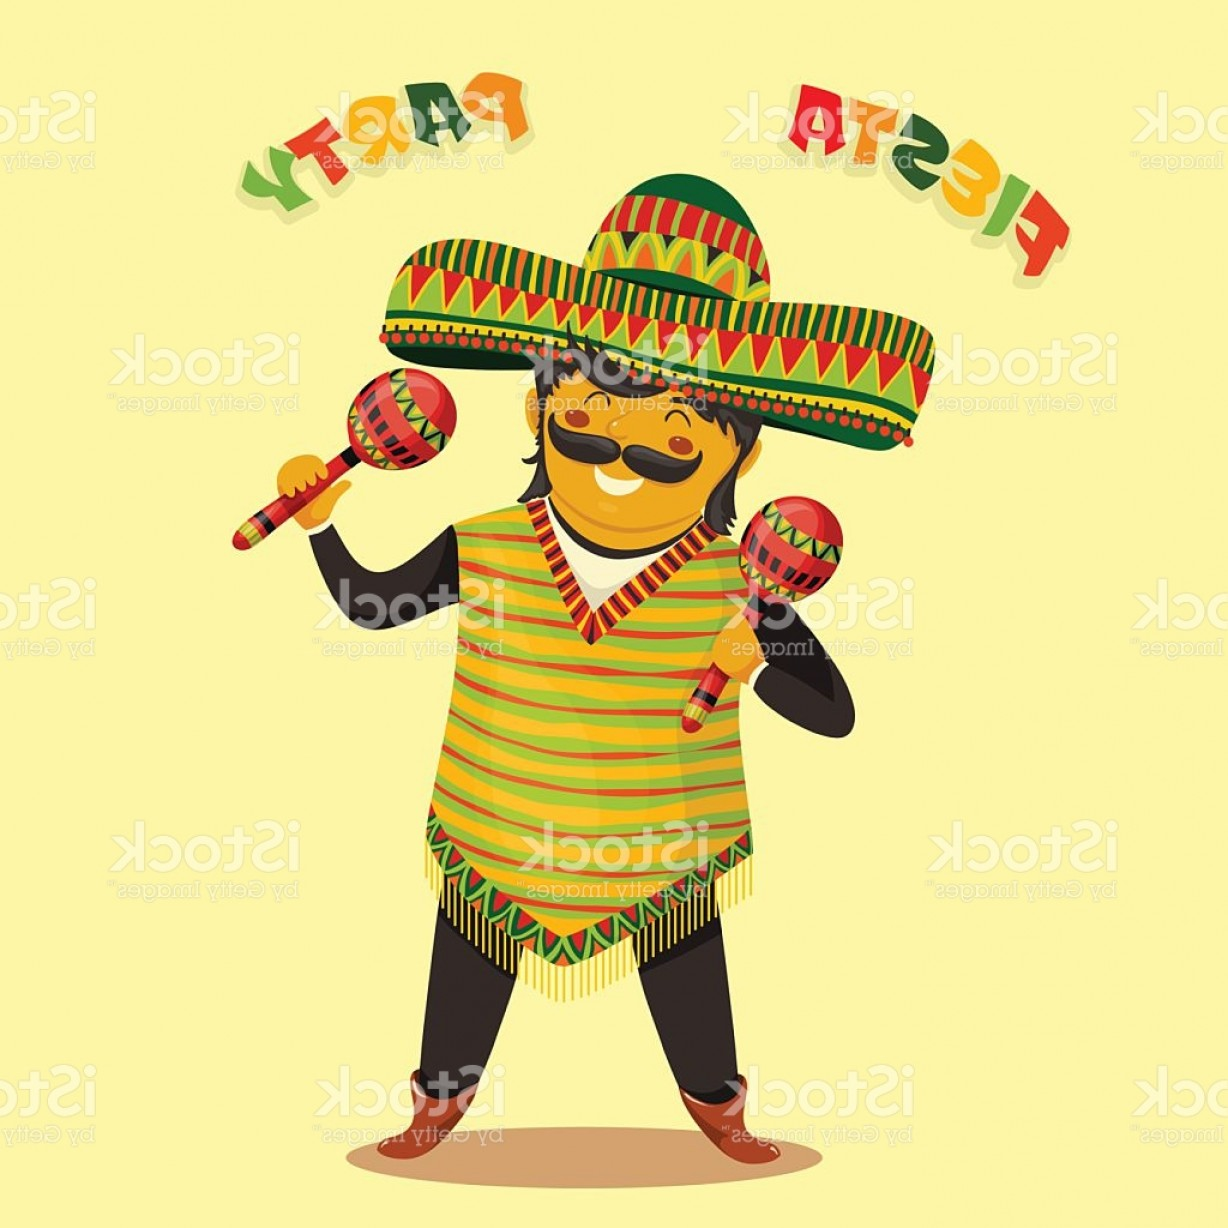 Fiesta Mexico Vector: Fiesta Party Invitation With Mexican Man Playing Maracas In Sombrero Gm